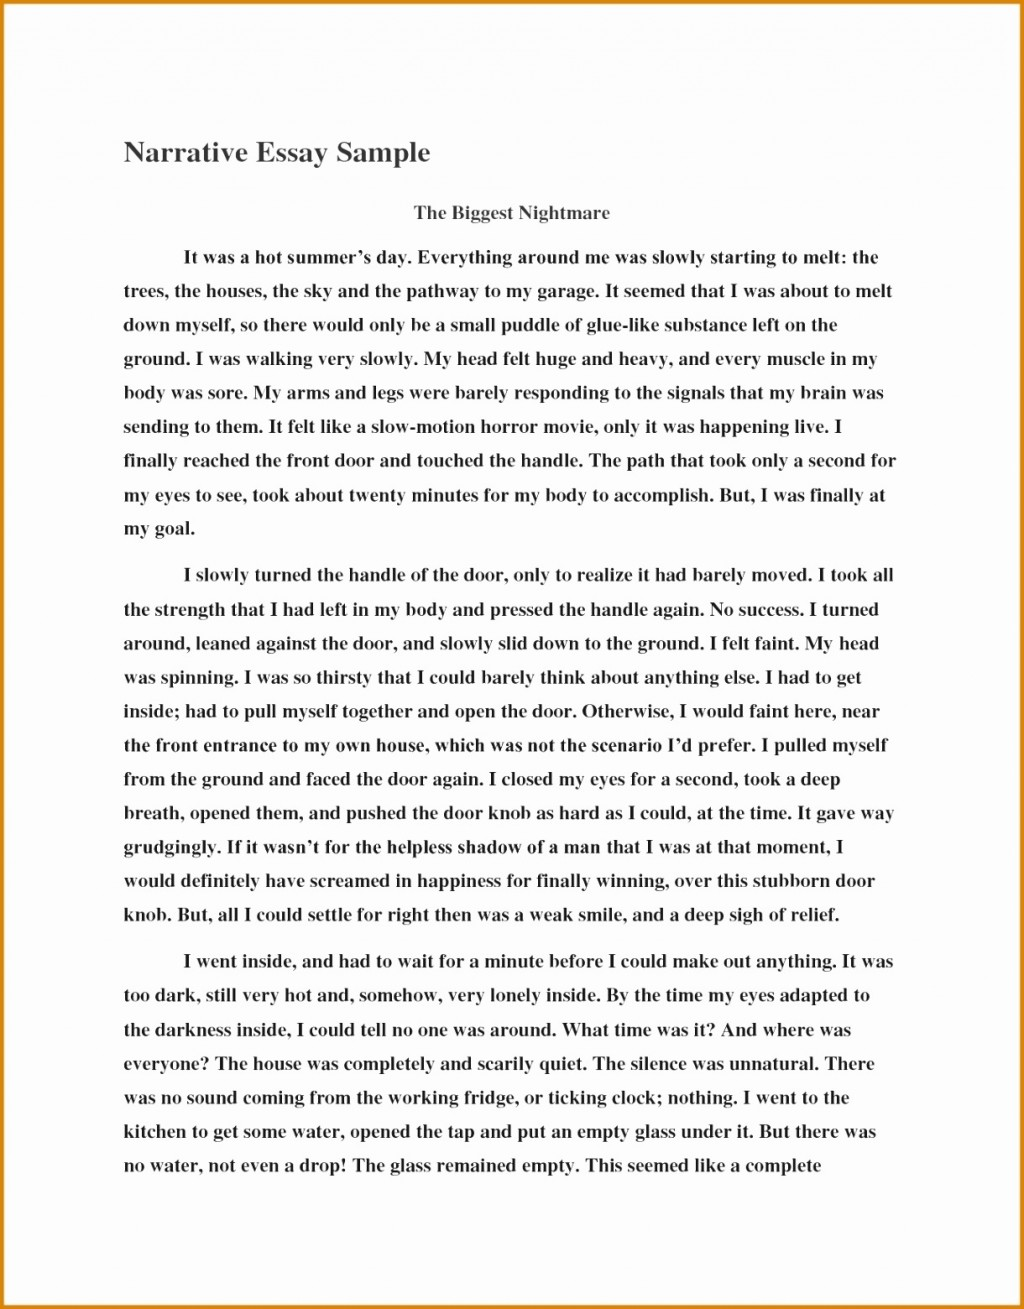 006 Essay Example How To Write Narrative About Myself Poemview Co Me Sample For College Essays Yourself Ideal Vistalist Regarding Application All Top Admission Examples Pdf An In Spanish Large